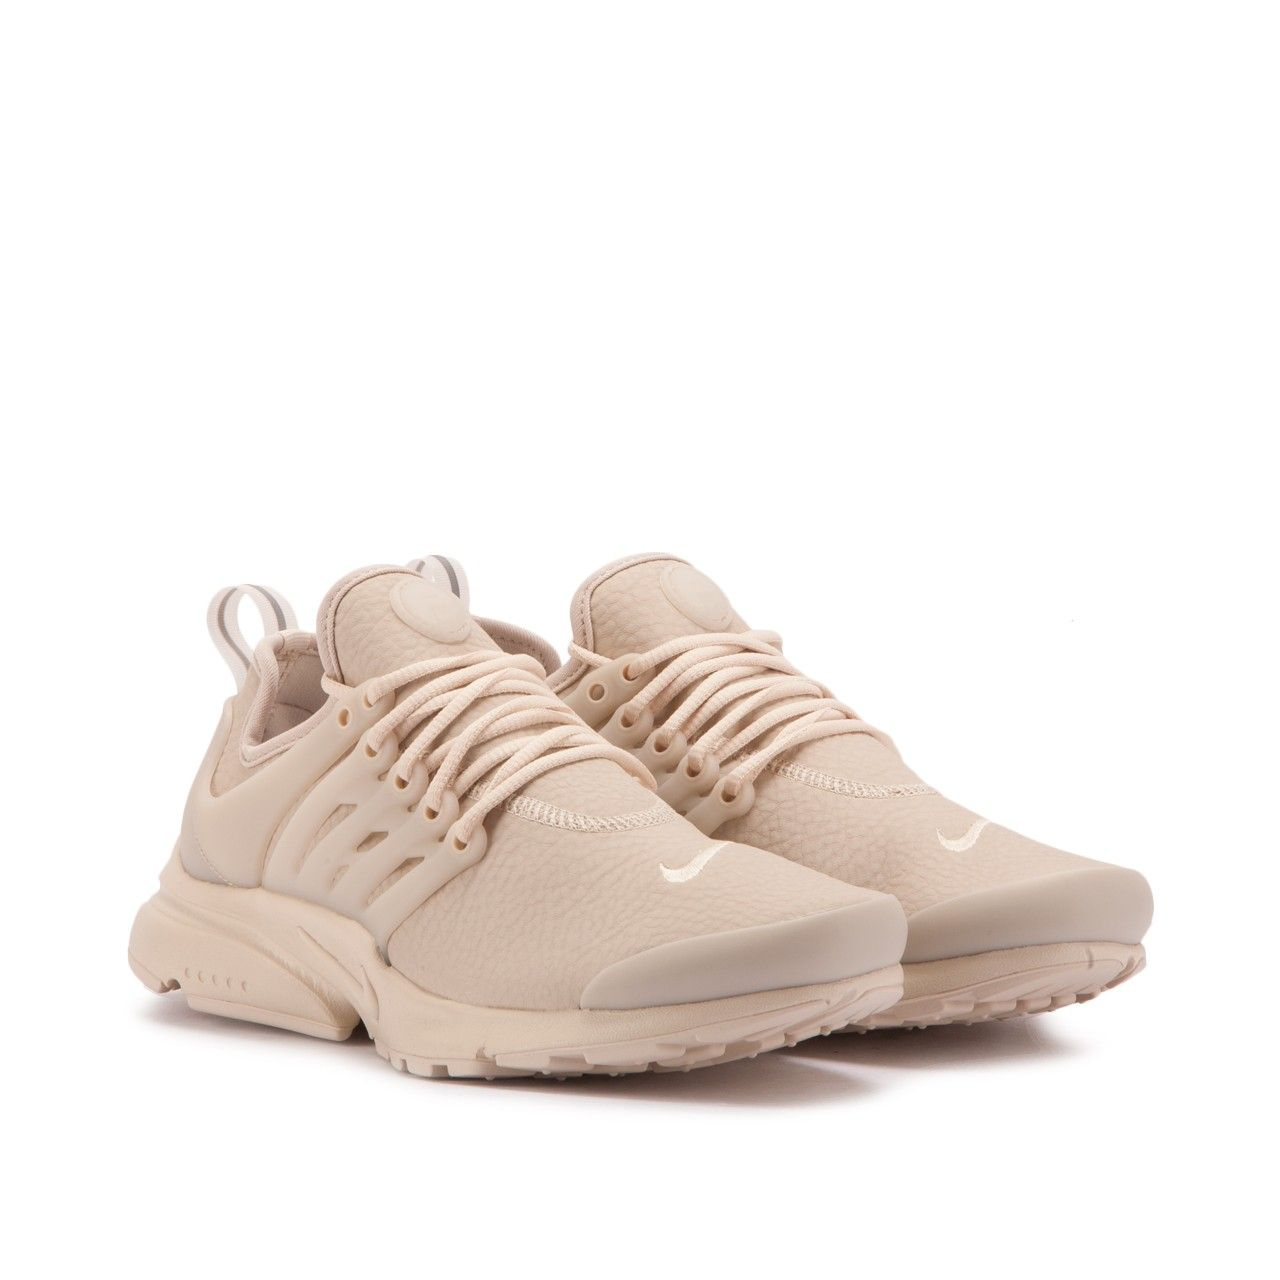 nike presto beige Sport Pinterest Chaussure, Baskets et Vetements